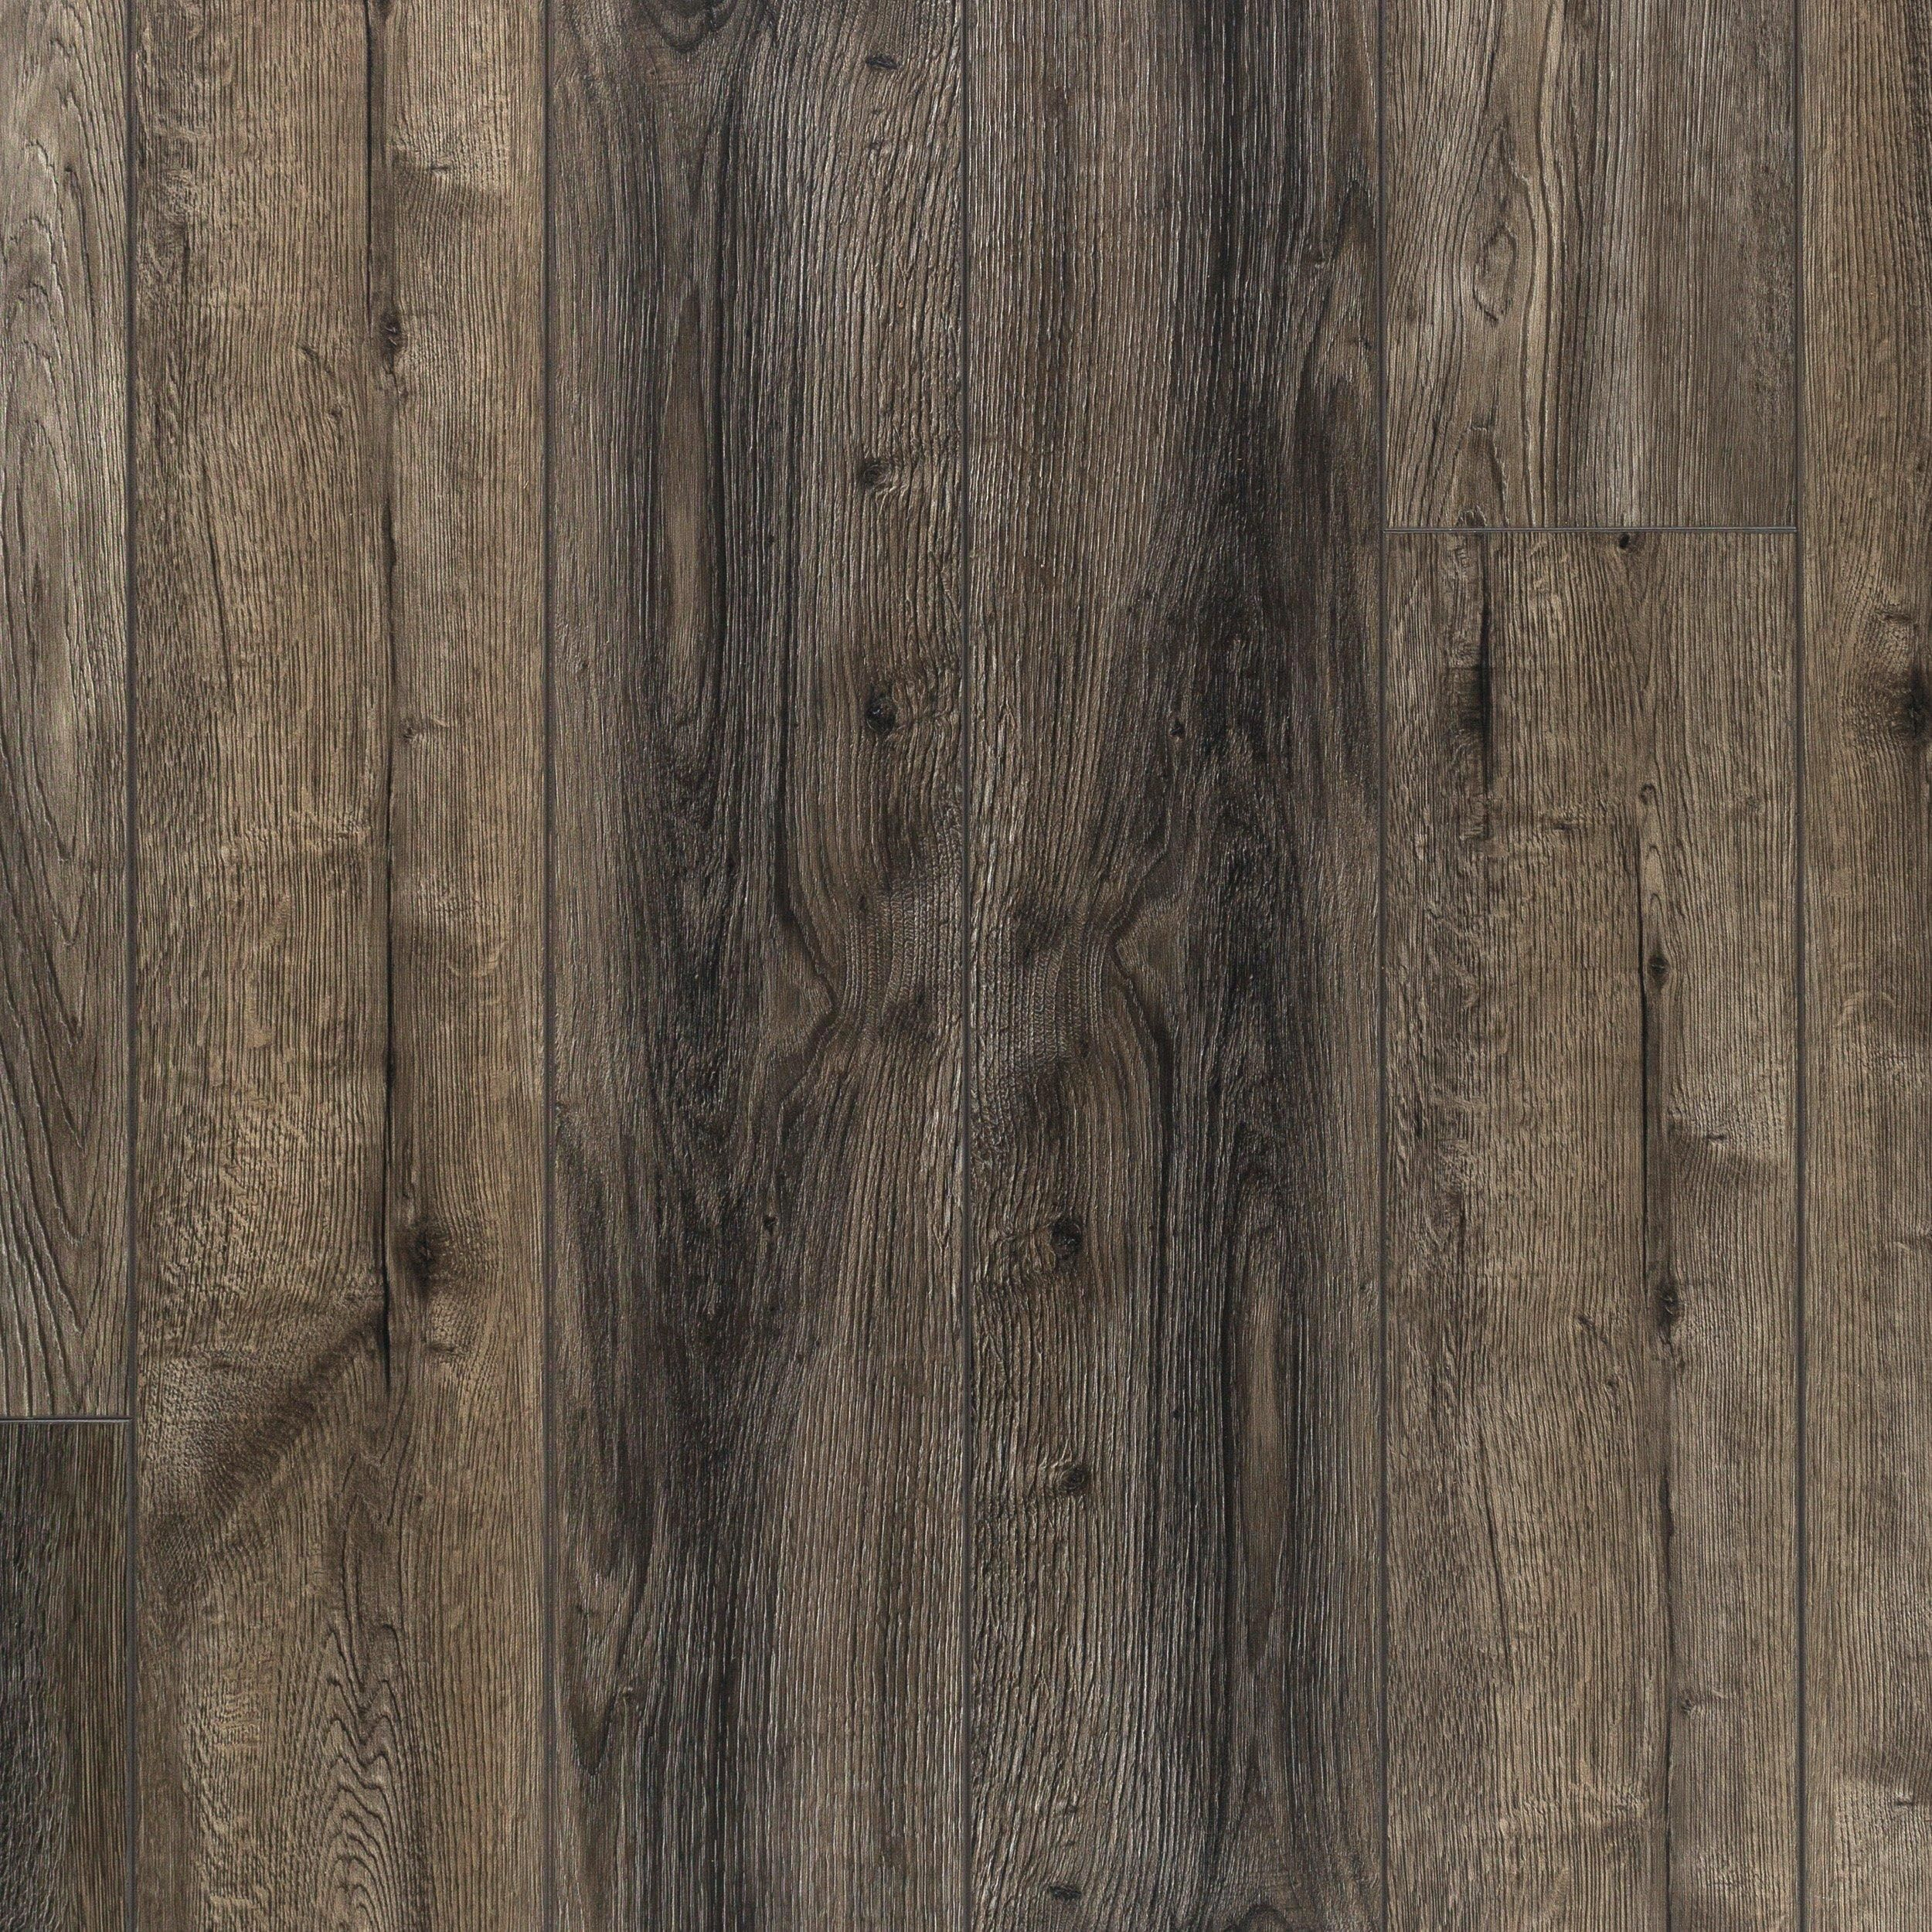 Amazing vinyl plank flooring pros and cons only on